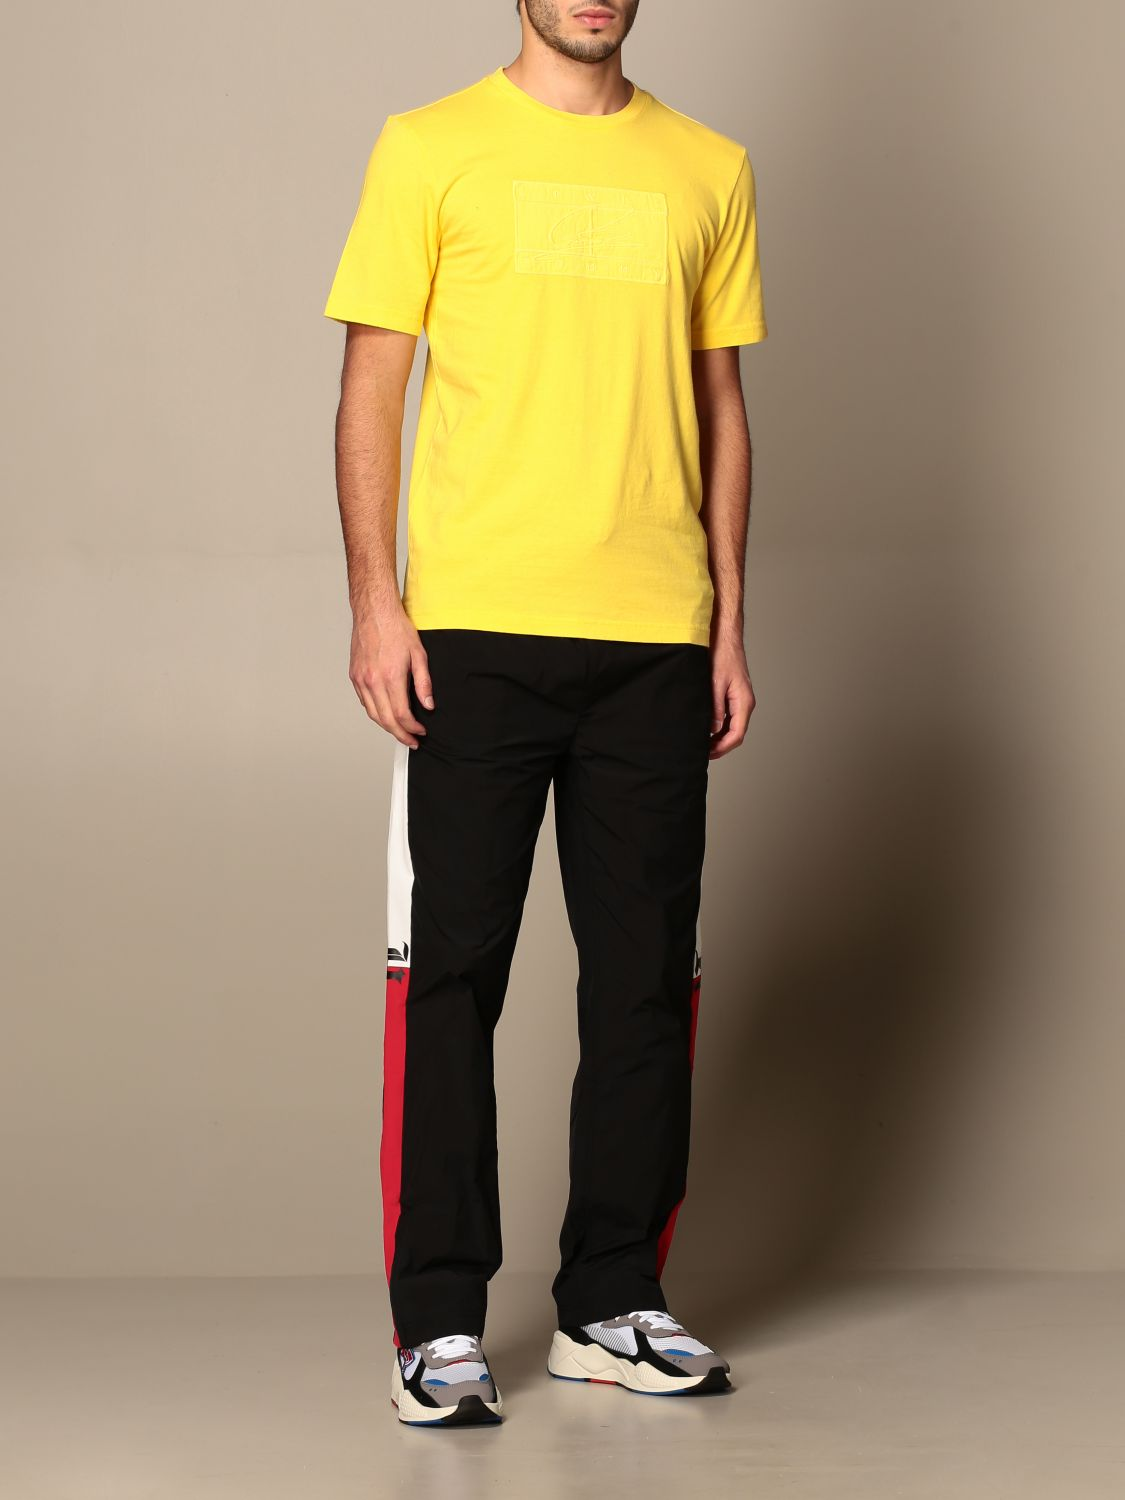 T-shirt Hilfiger Collection: Lewis Hamilton relaxed fit cotton T-shirt yellow 2